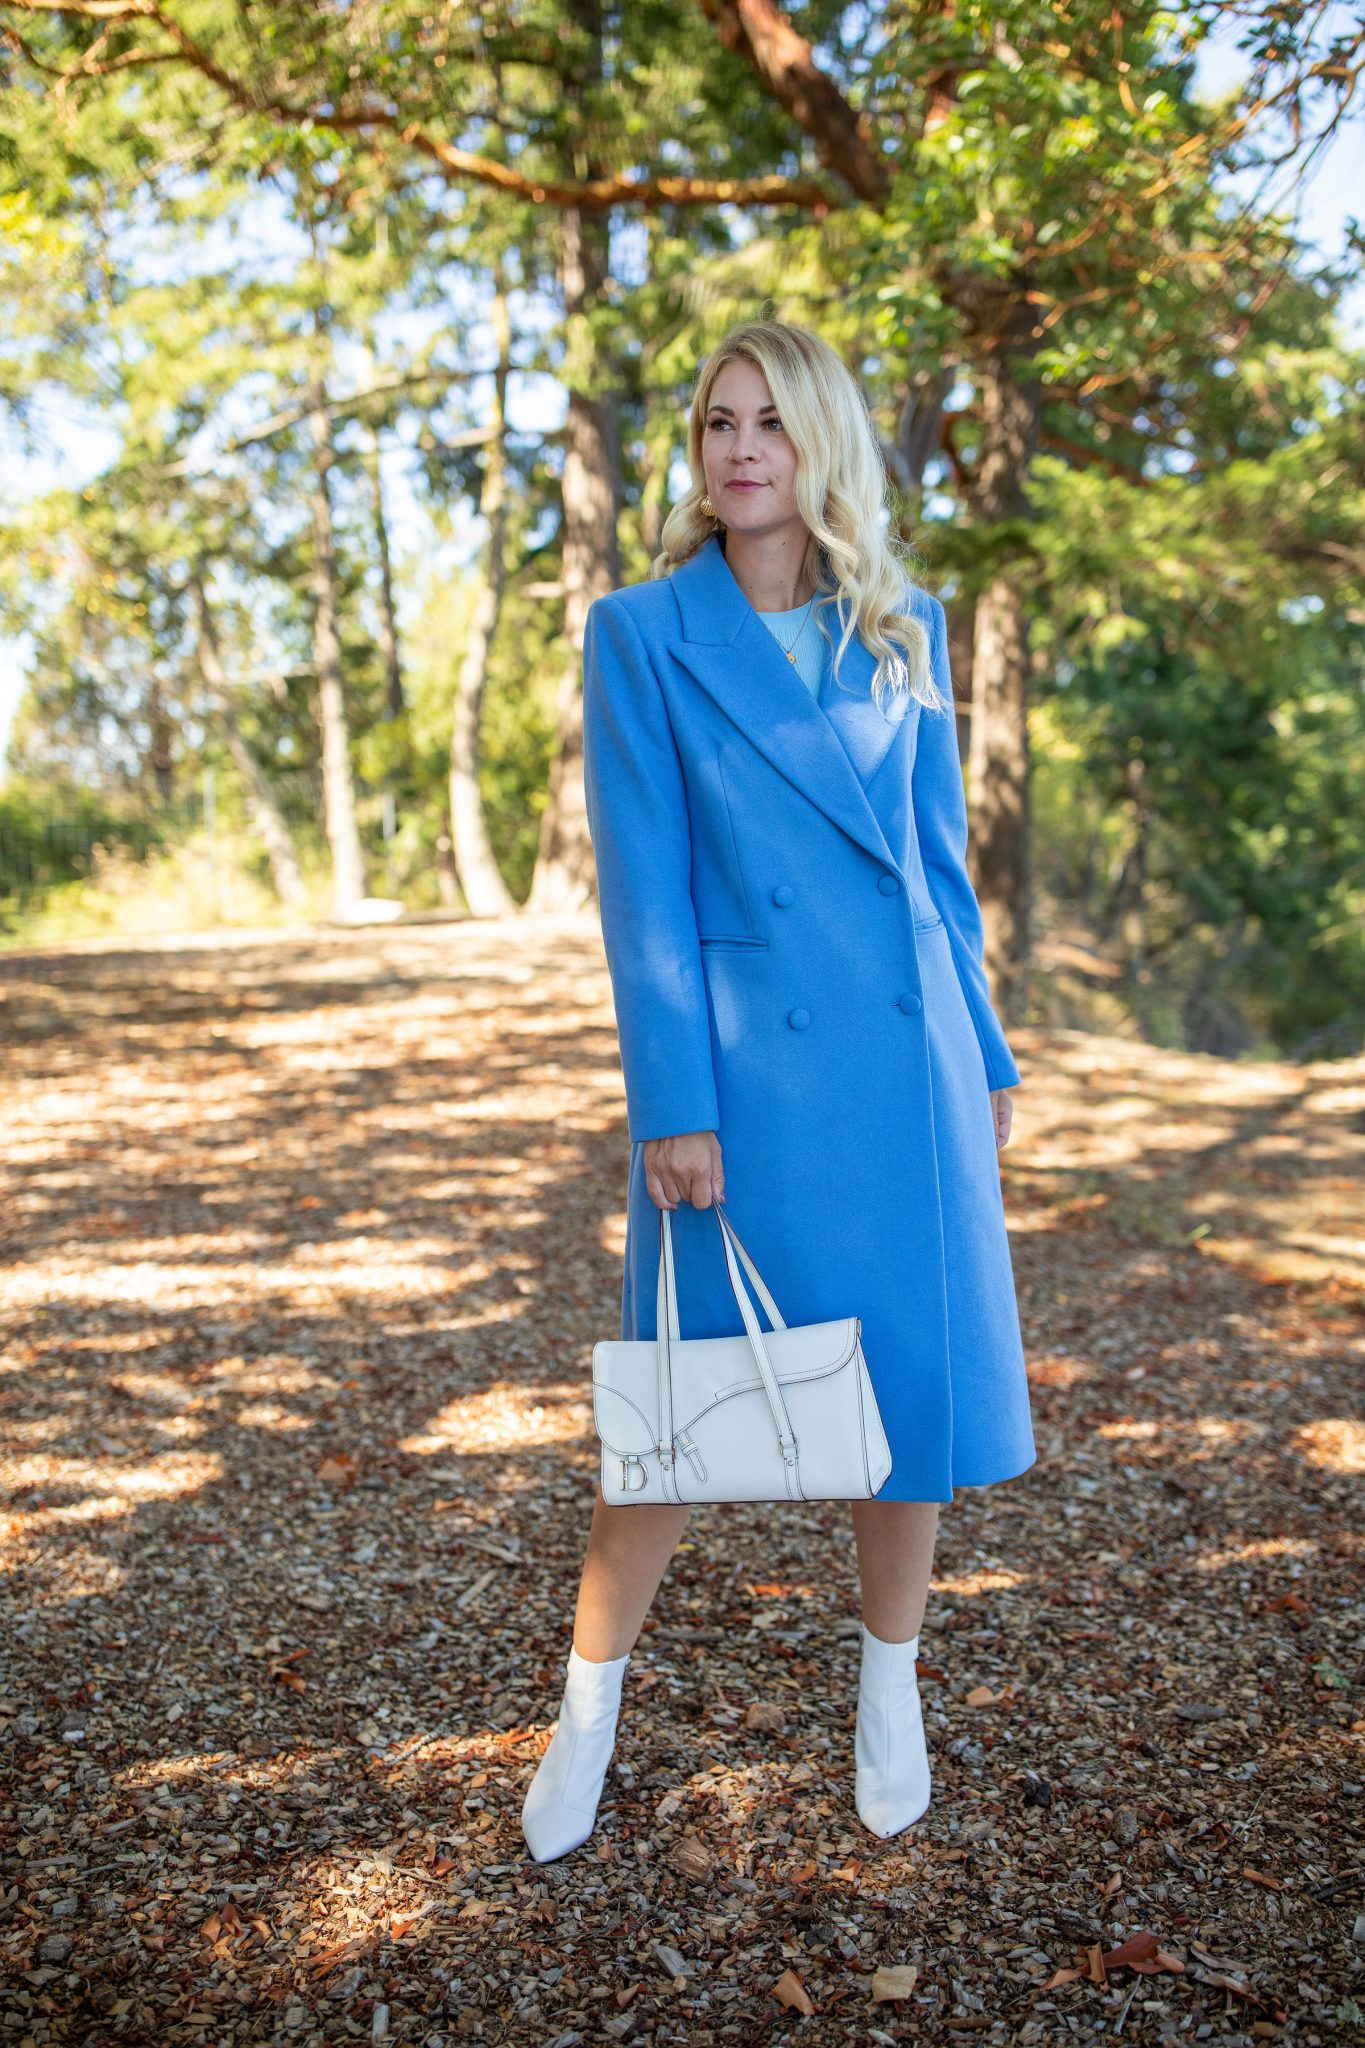 Wool Coat by Seattle tall fashion blog, Whit Wanders: image of a woman standing outside and wearing a  Ave Les Fille Wool Coat via Nordstrom, Zara Bodycon Dress, Booties by Guess, and holding a Dior Purse.